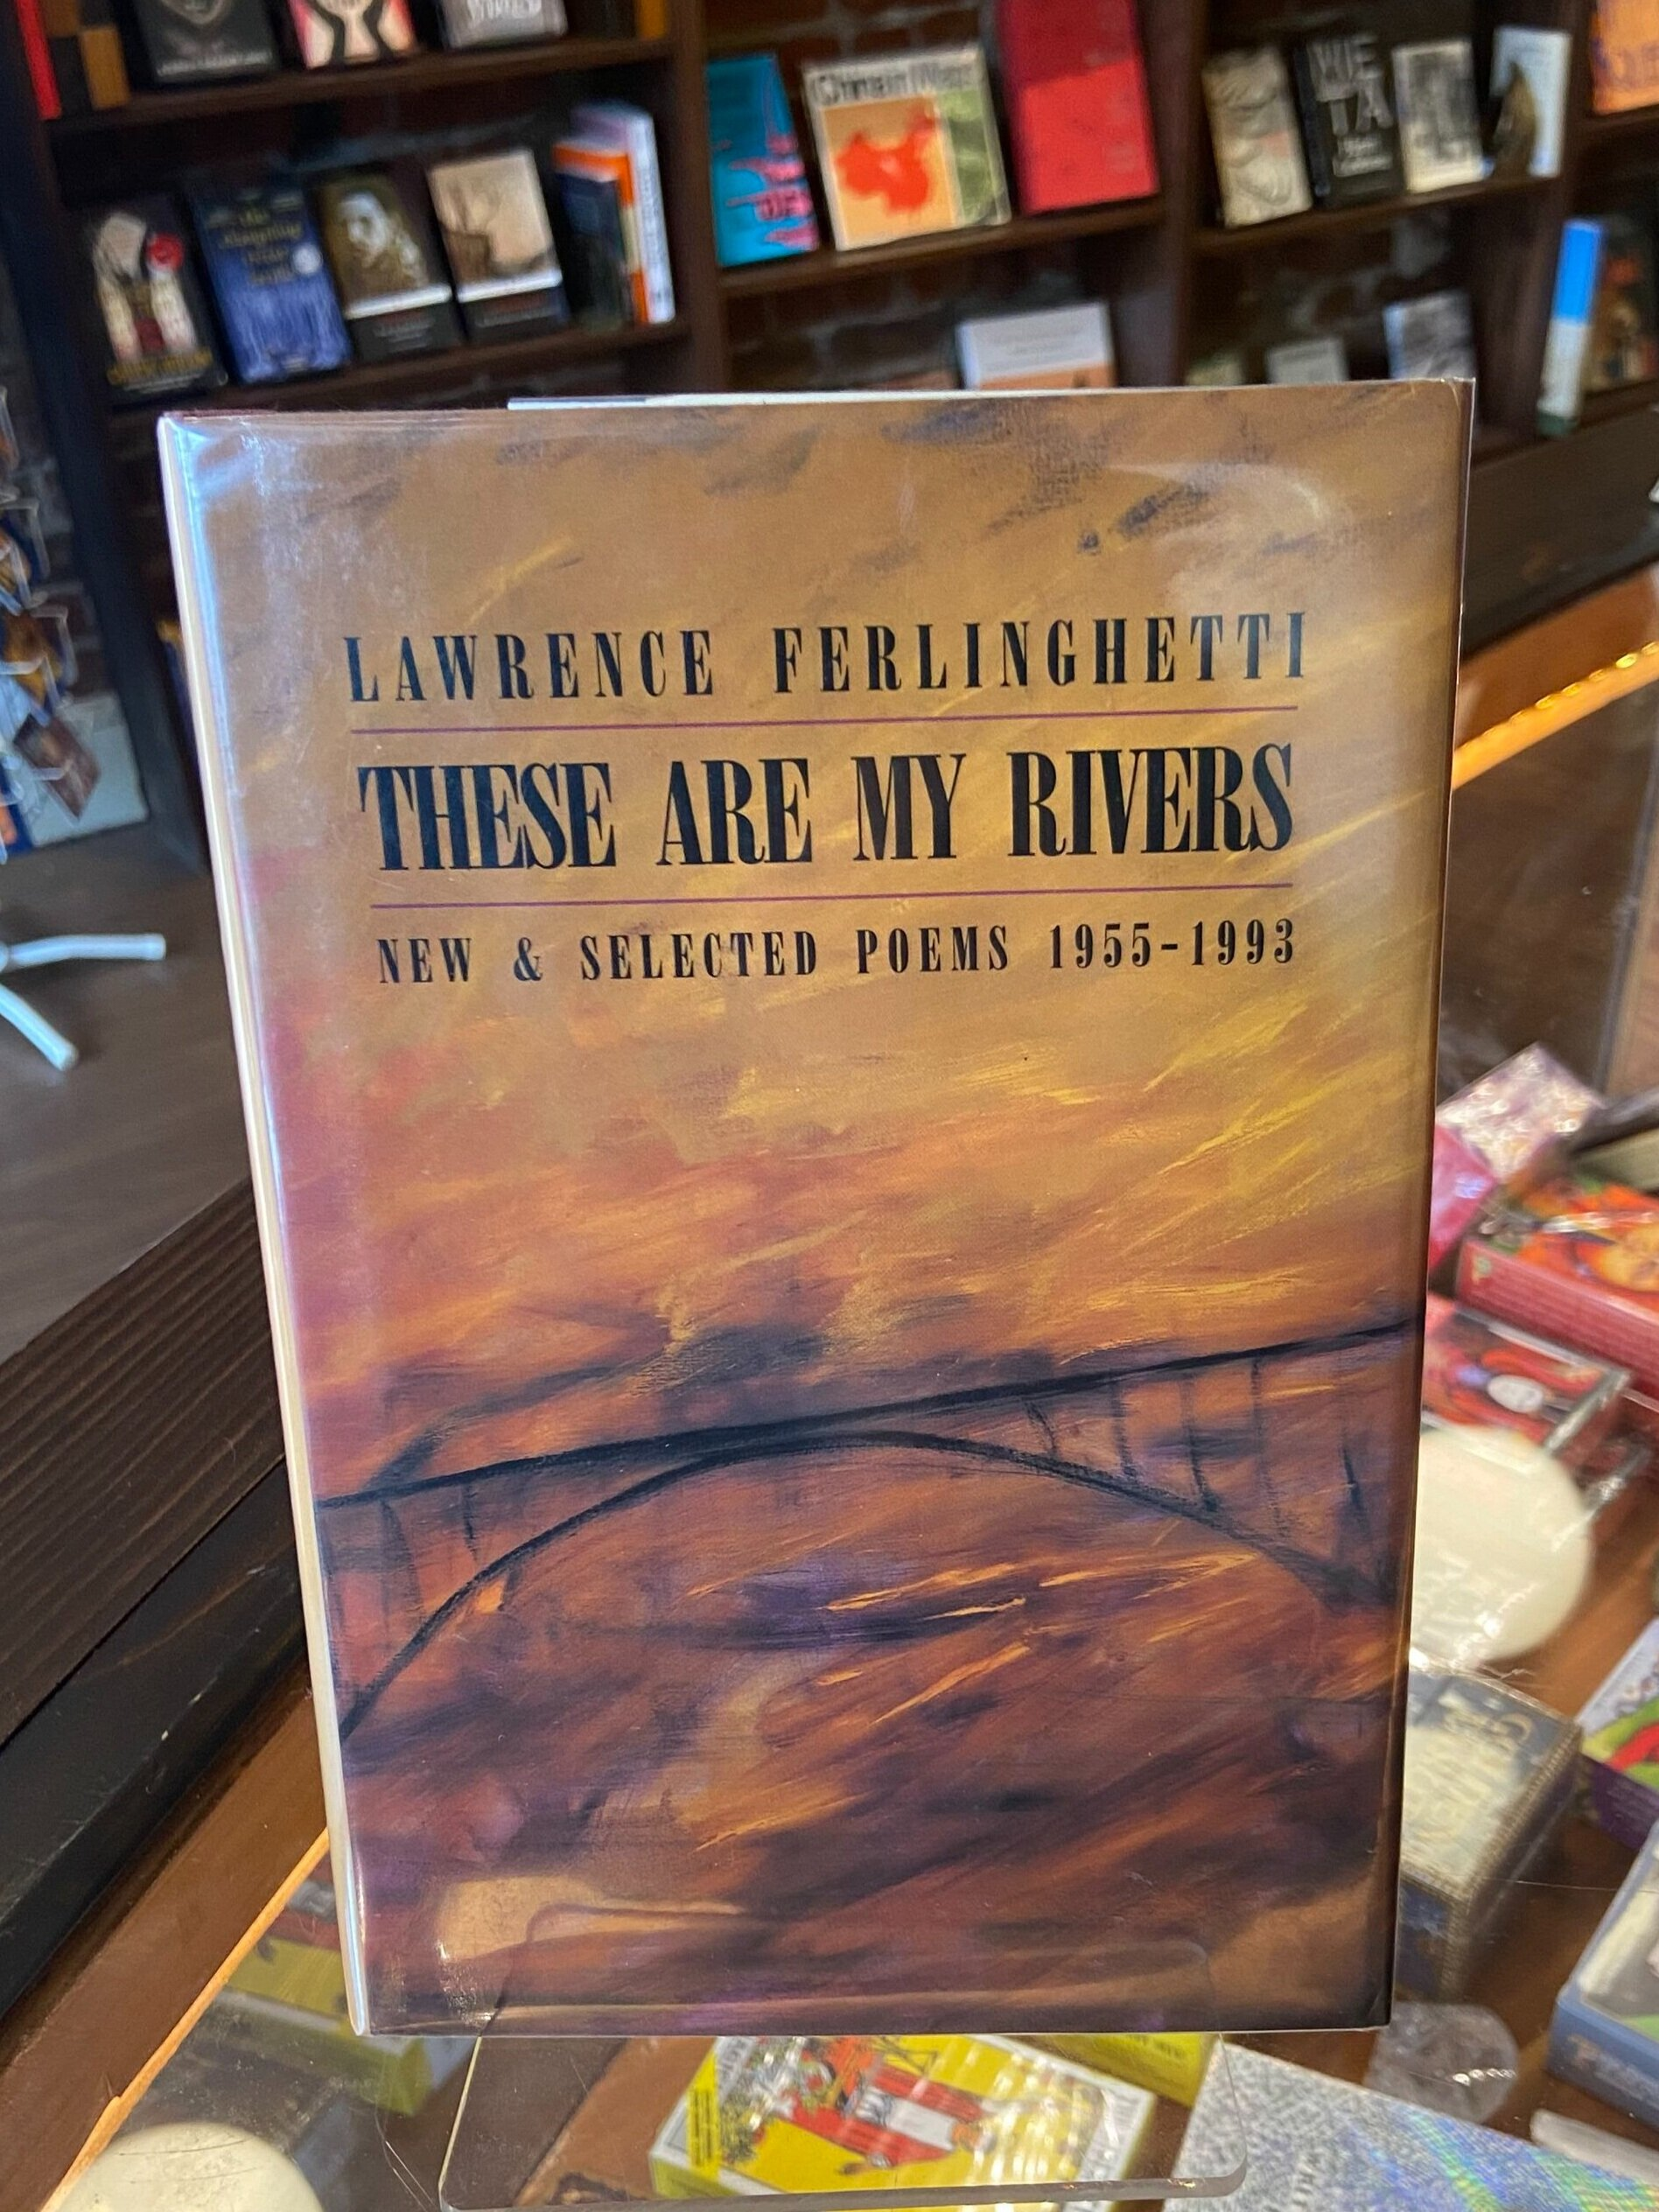 These are My Rivers: New & Selected Poems 1955 - 1993 by Lawrence  Ferlinghetti (Signed!) — Lost City Bookstore